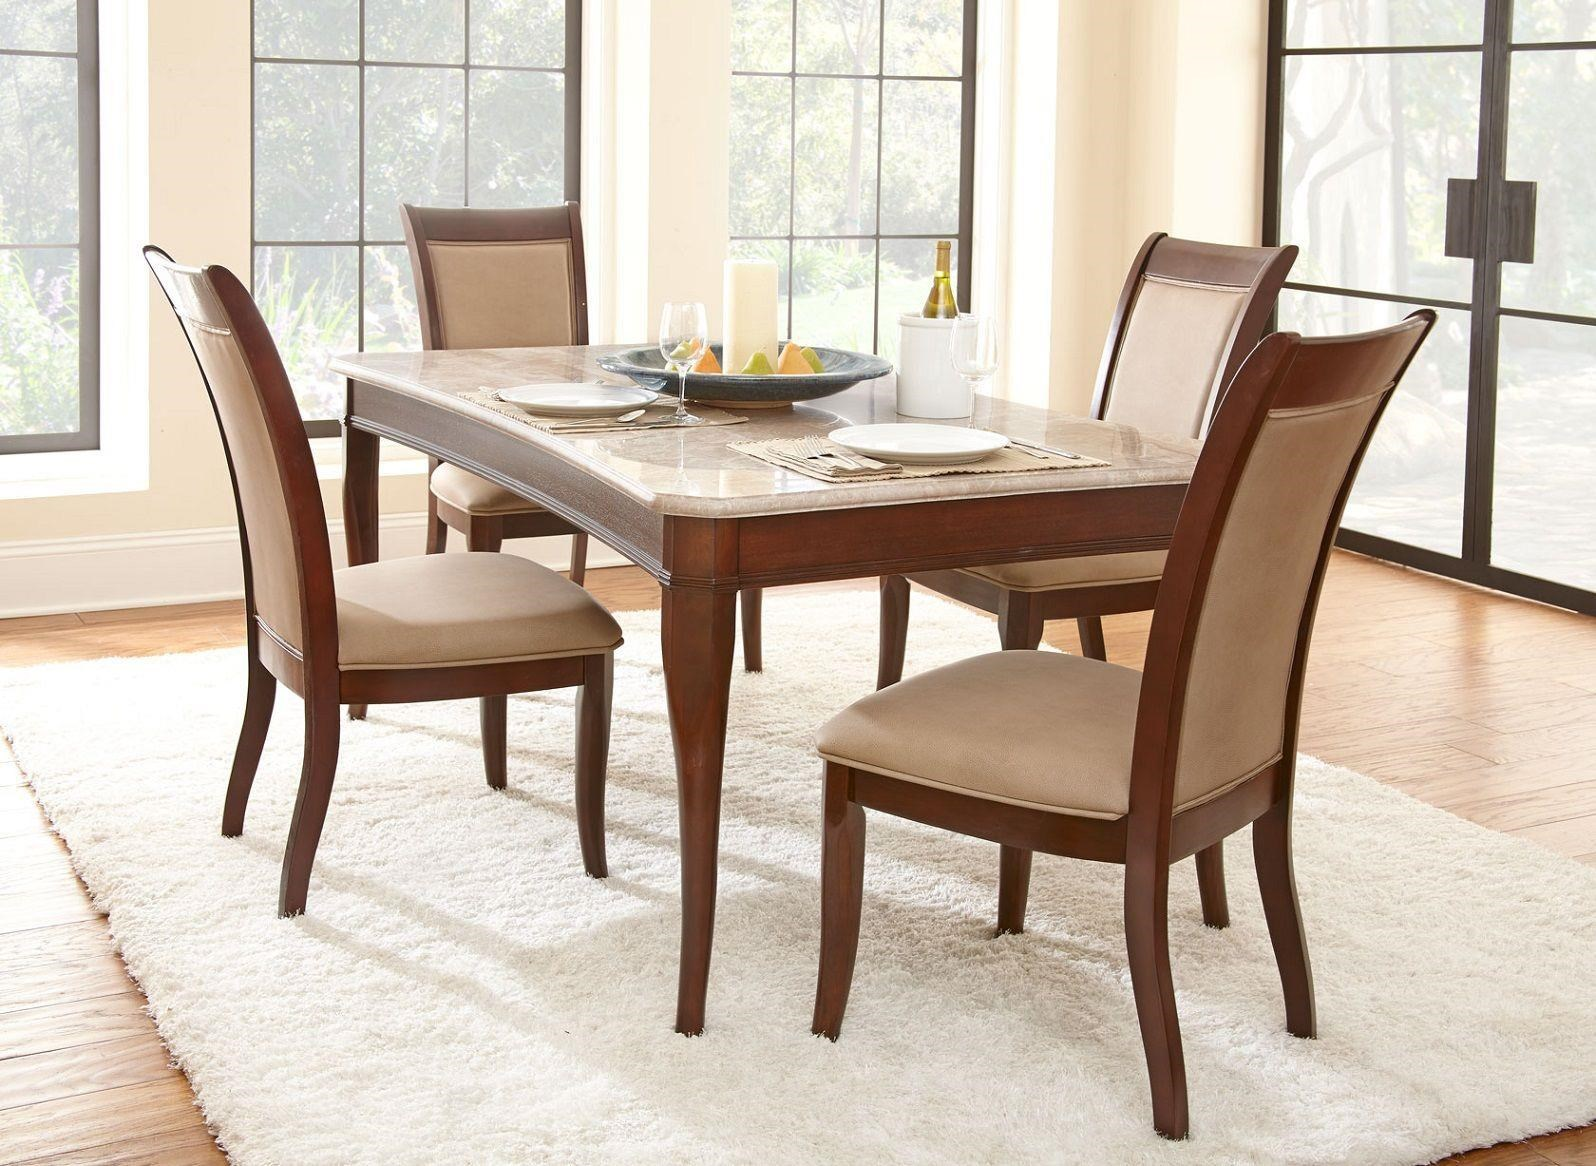 Marble Top Table with 4 Chairs